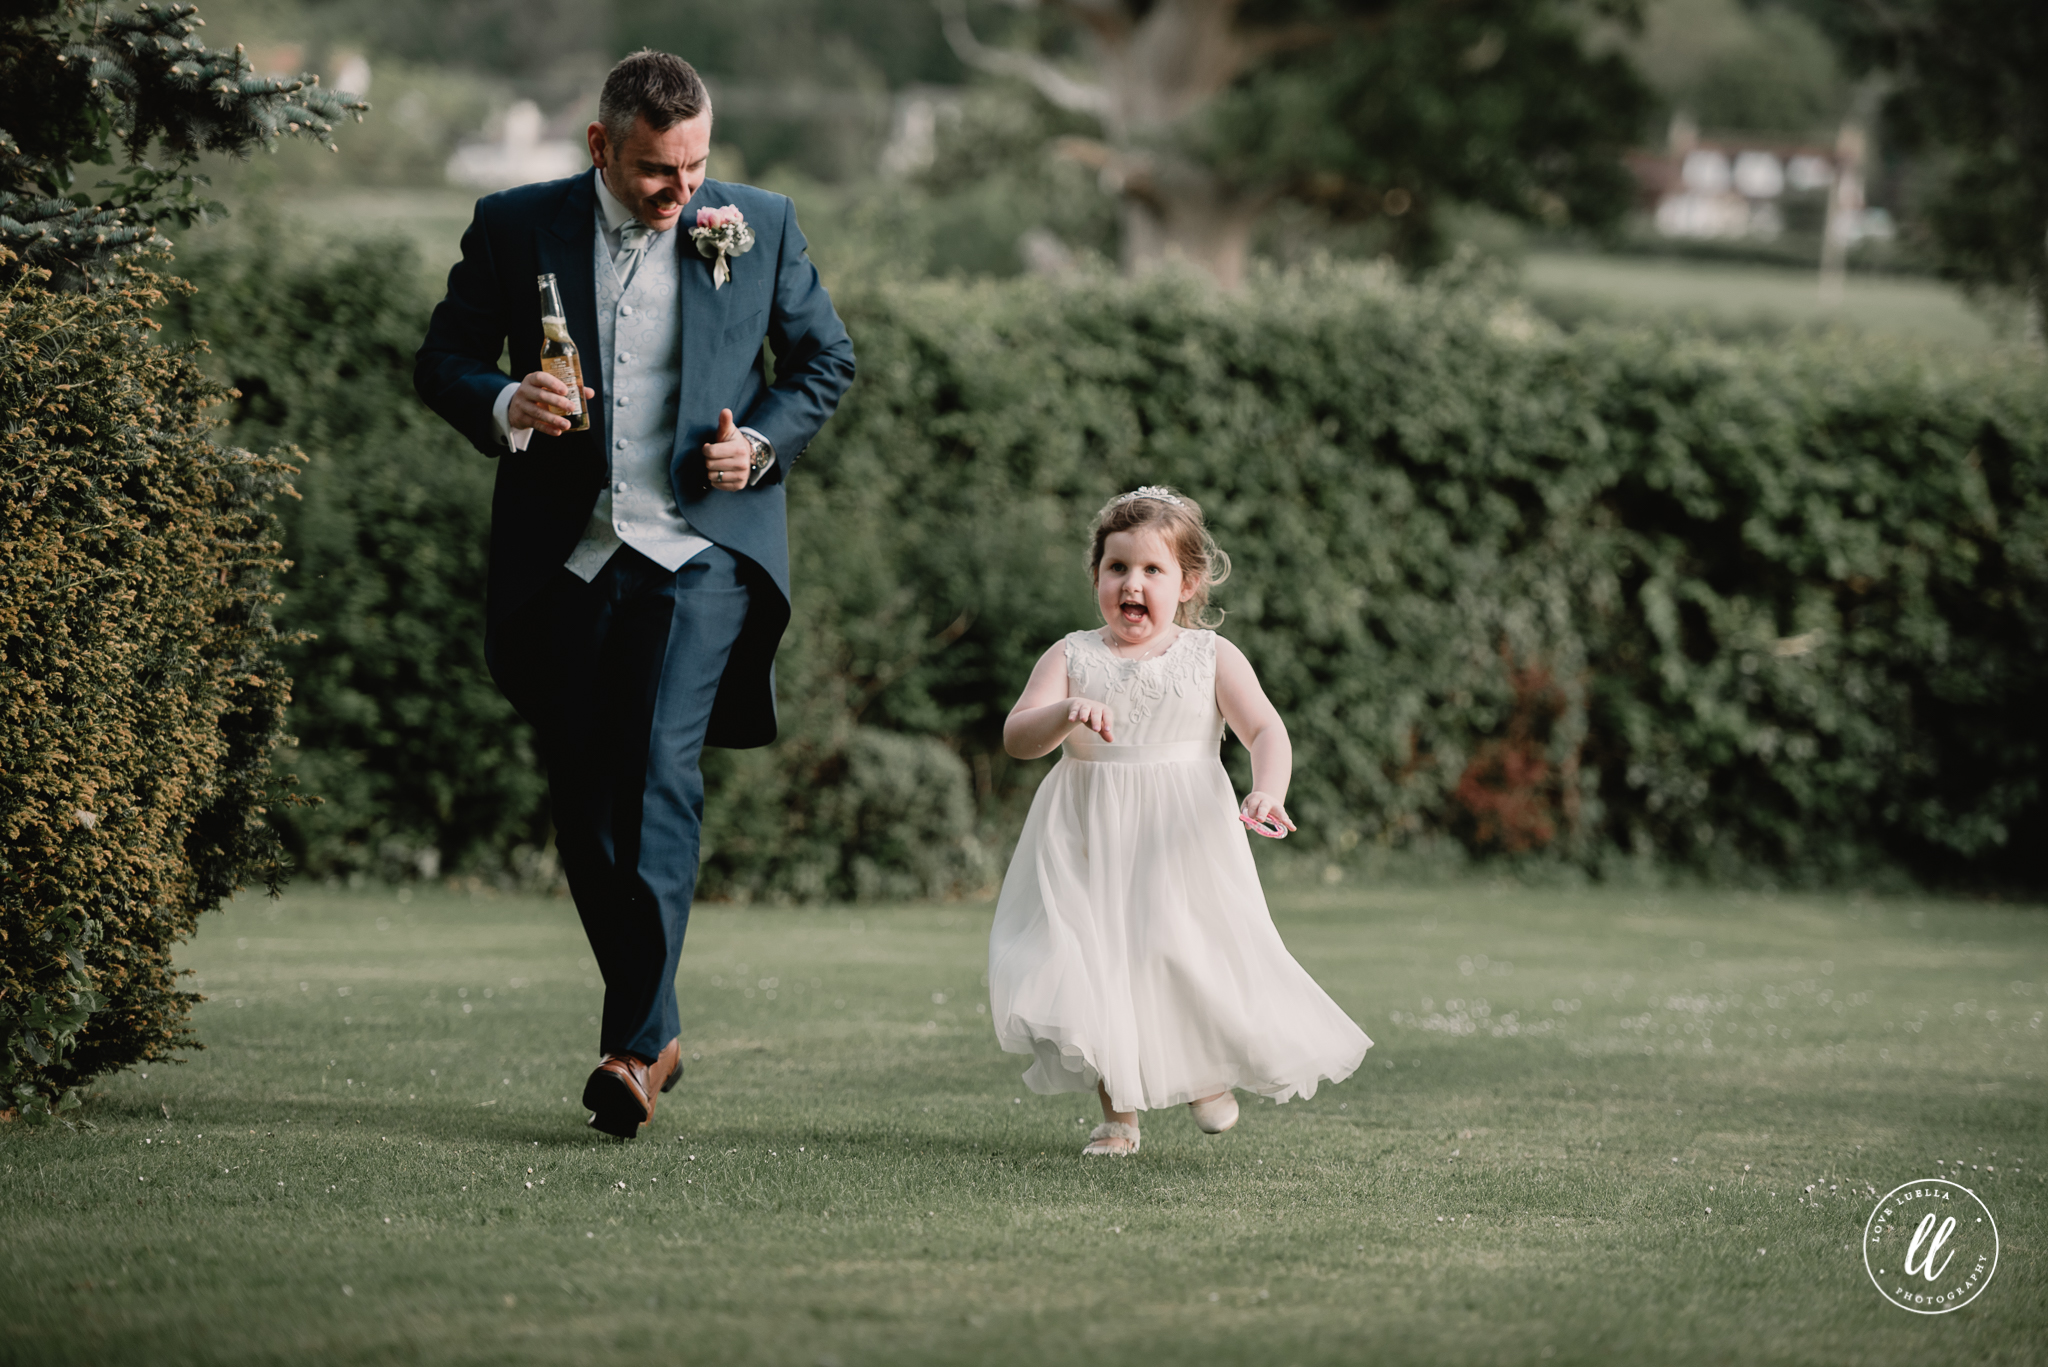 Father and daughter playfully running on the wedding day